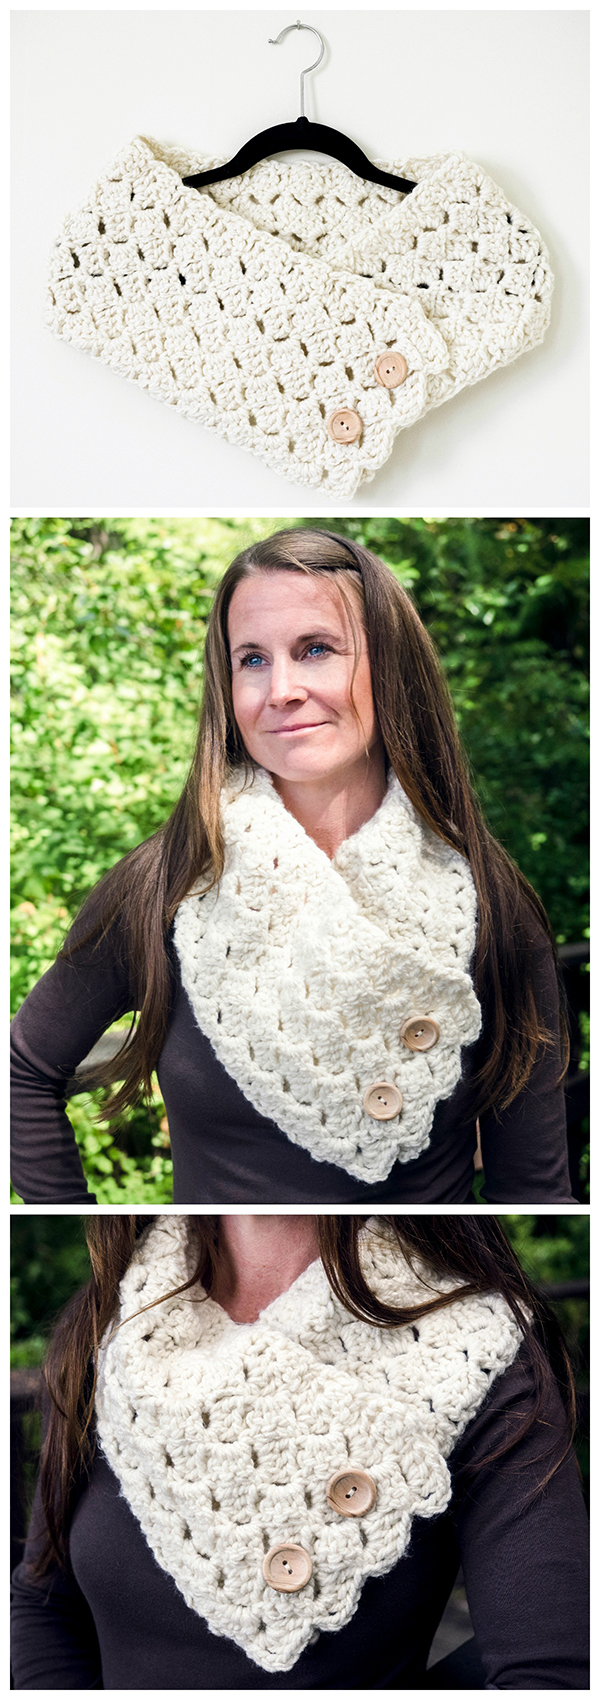 15 Fresh Fall Free Crochet Patterns - Page 4 of 4 - The Cottage Market